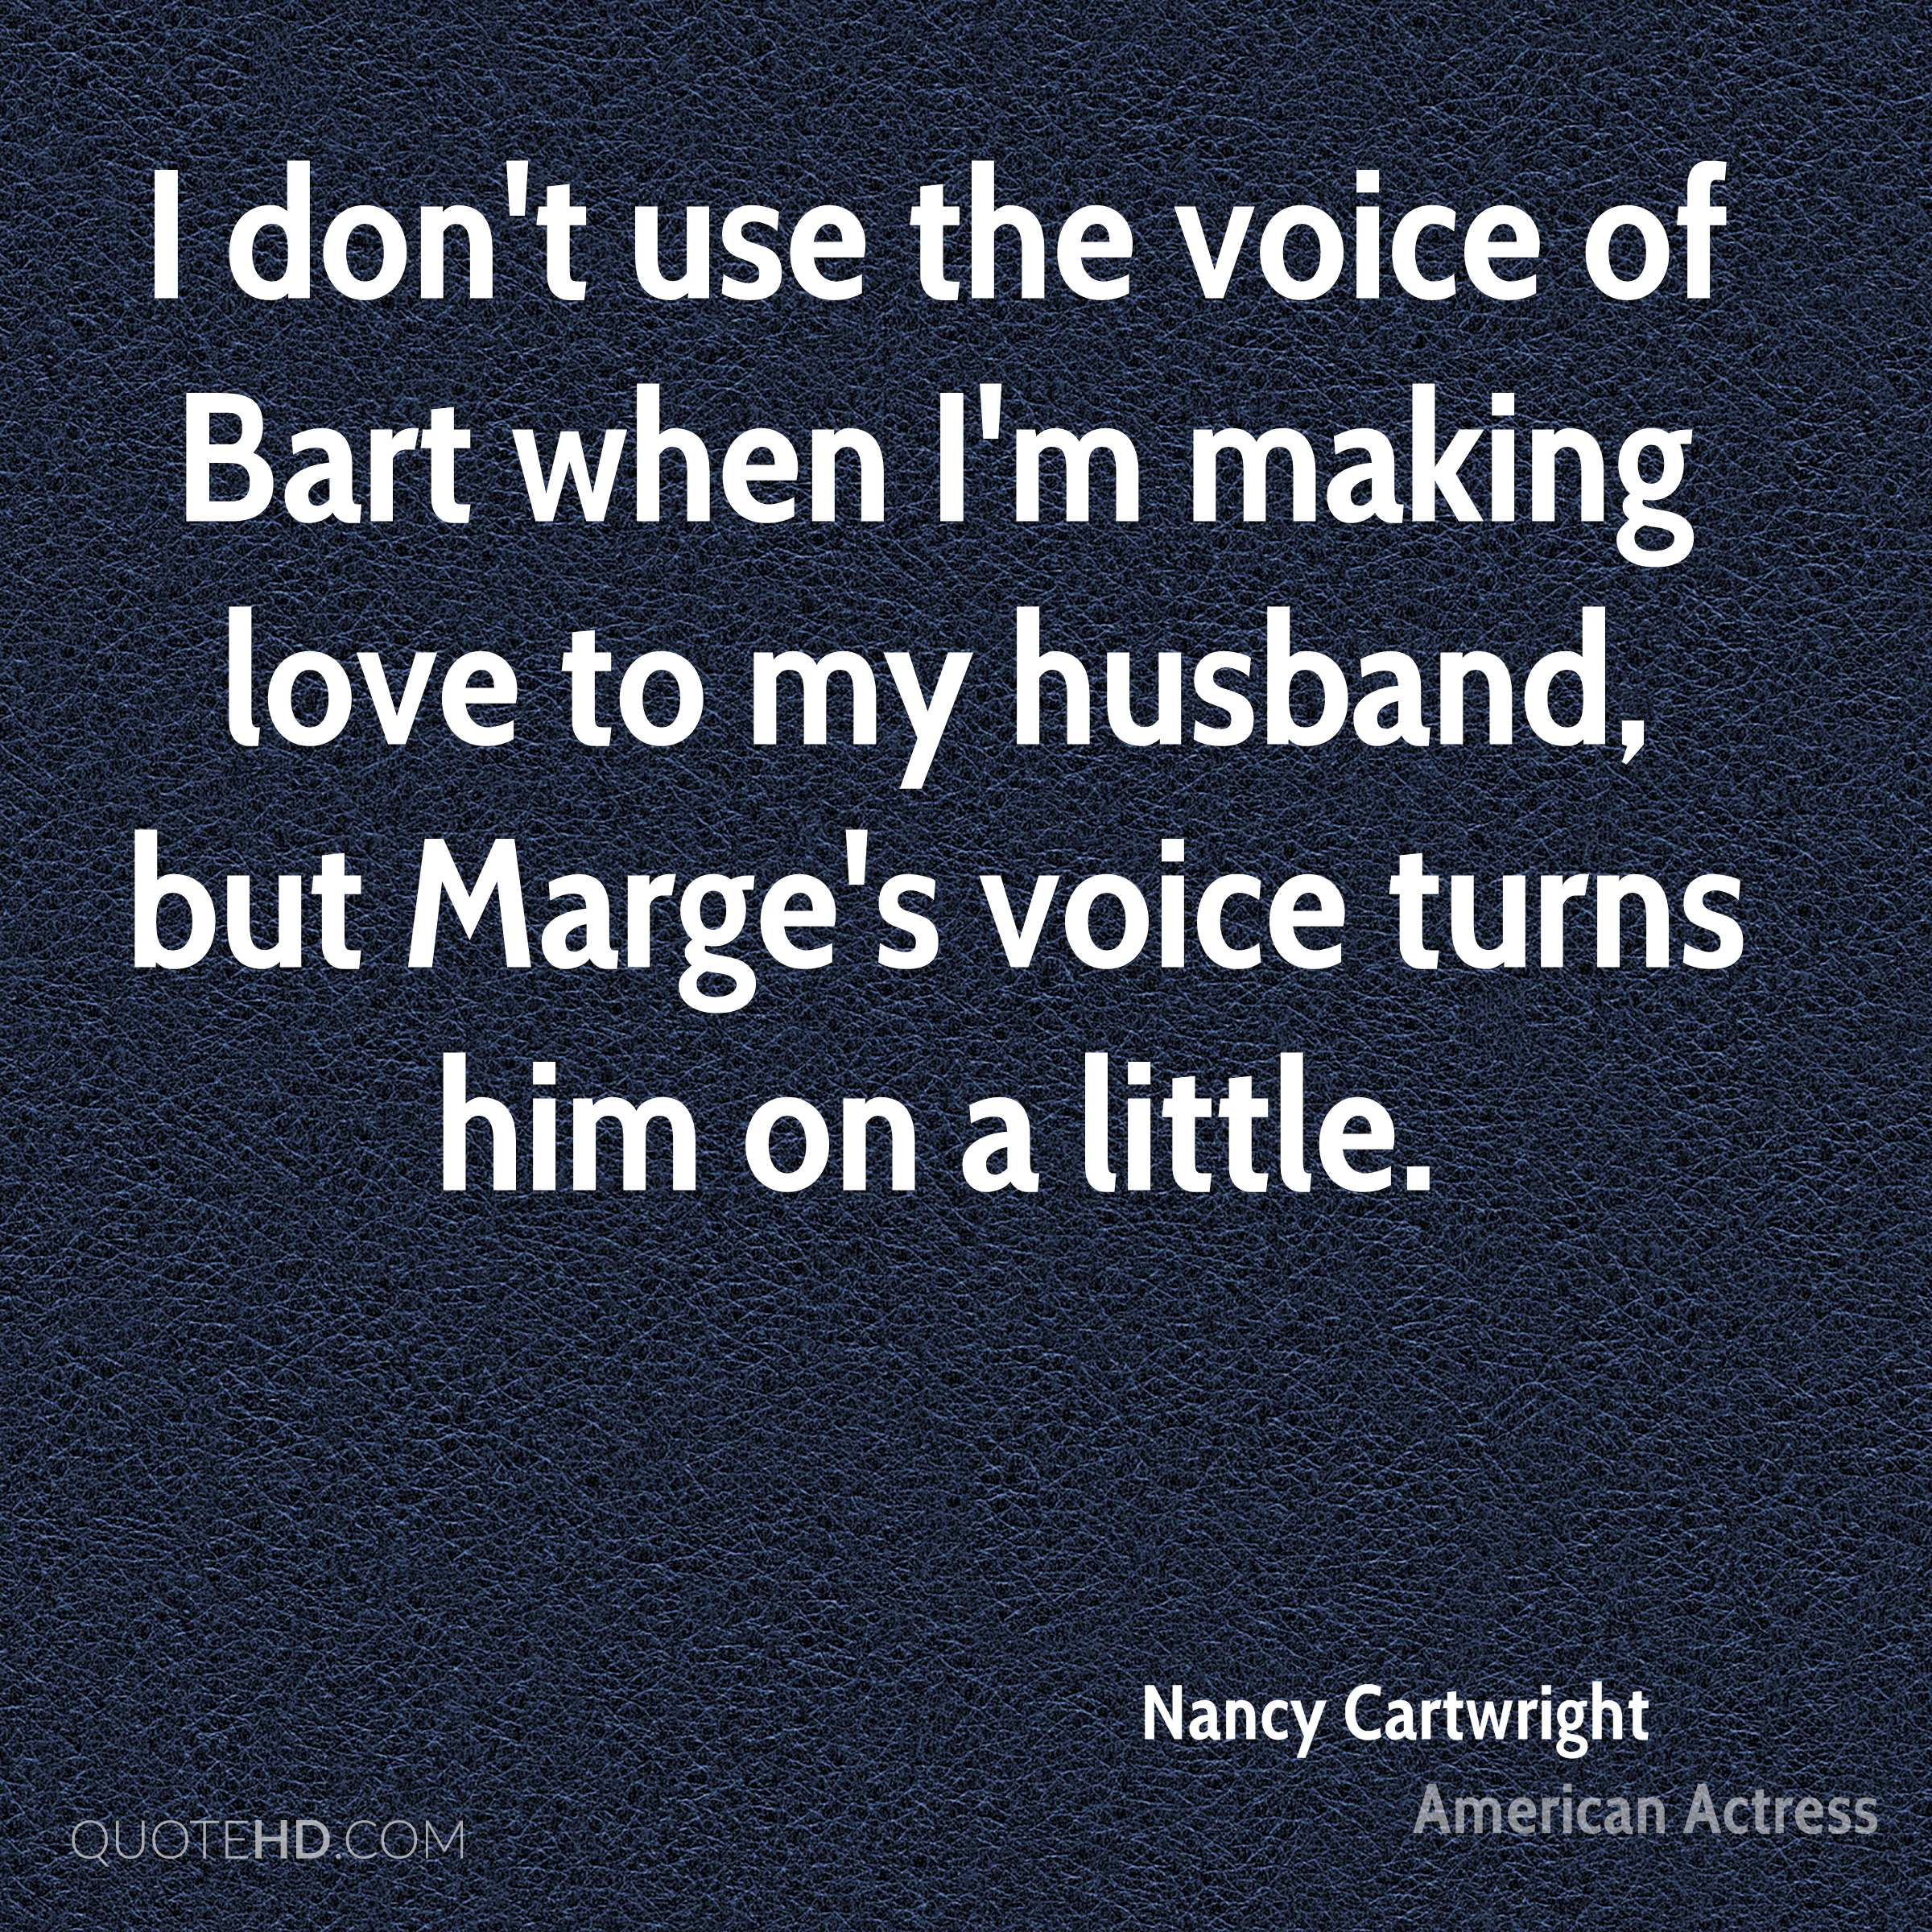 Nancy Cartwright Husband Quotes | QuoteHD